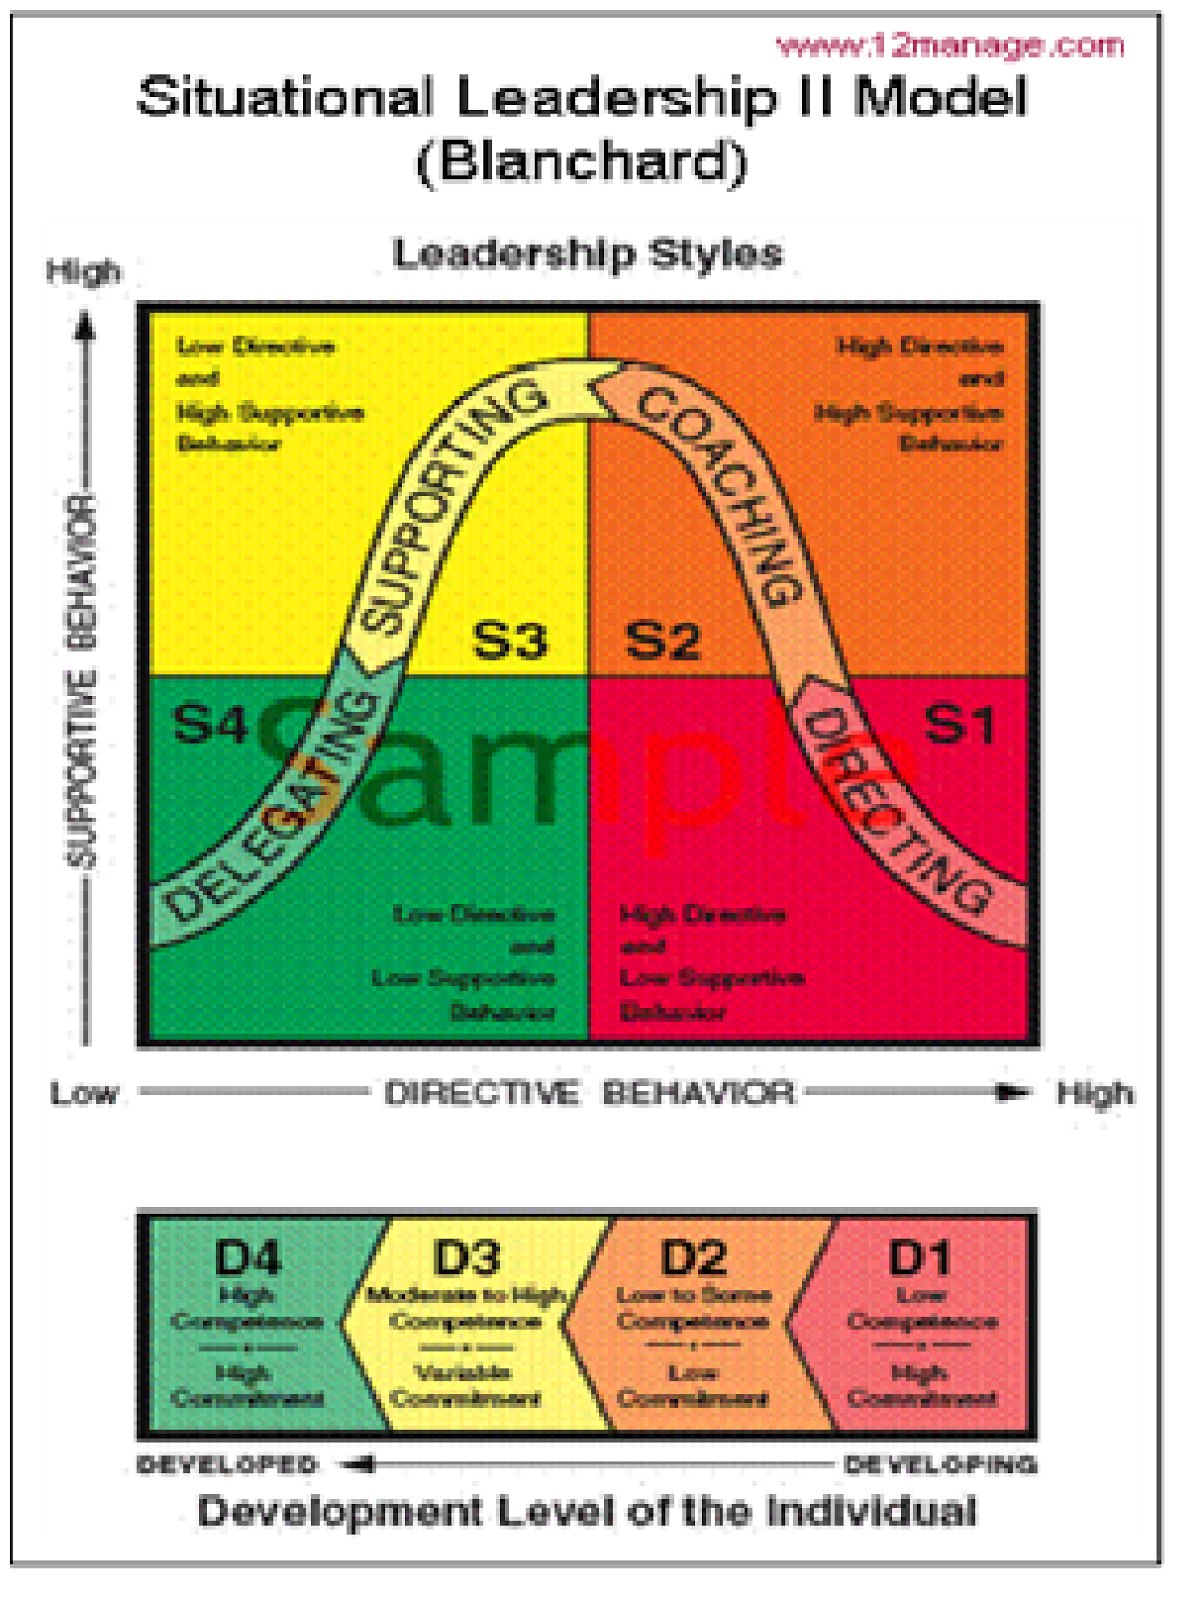 appropriate methods to review current leadership Citation: puranik v (2017) literature review of leadership  and interact with  others in order to guide their emotions and the way they act  yeo e (1993)  perceptions of appropriate leadership style: participation versus consultation  across 2 cultures  and behaviors: a meta-analytic review of existing and new  research.